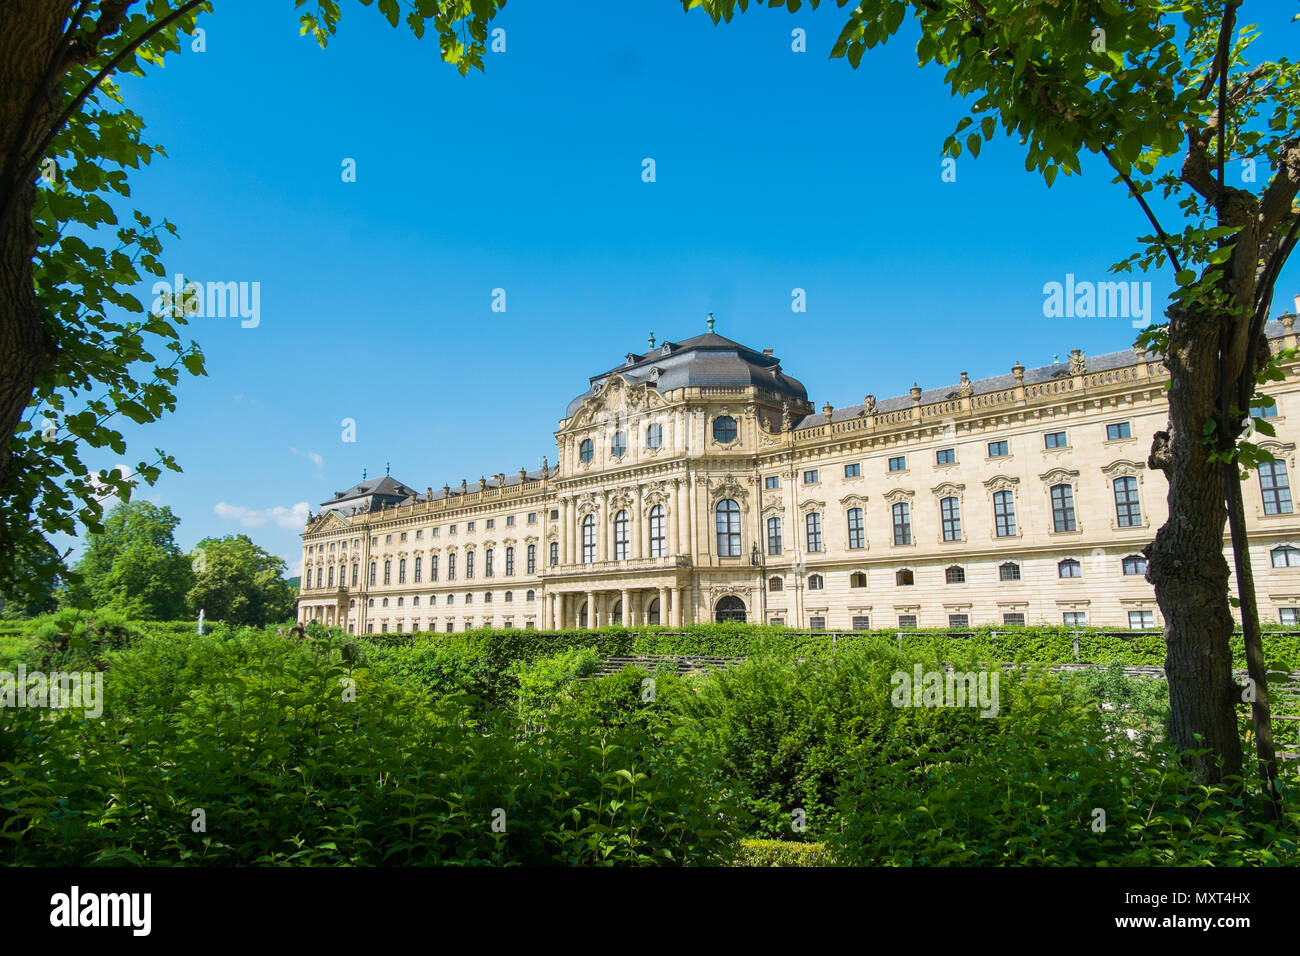 Hofgarten garden and Würzburger Residenz, Würzburg, Bavaria, Germany Stock Photo